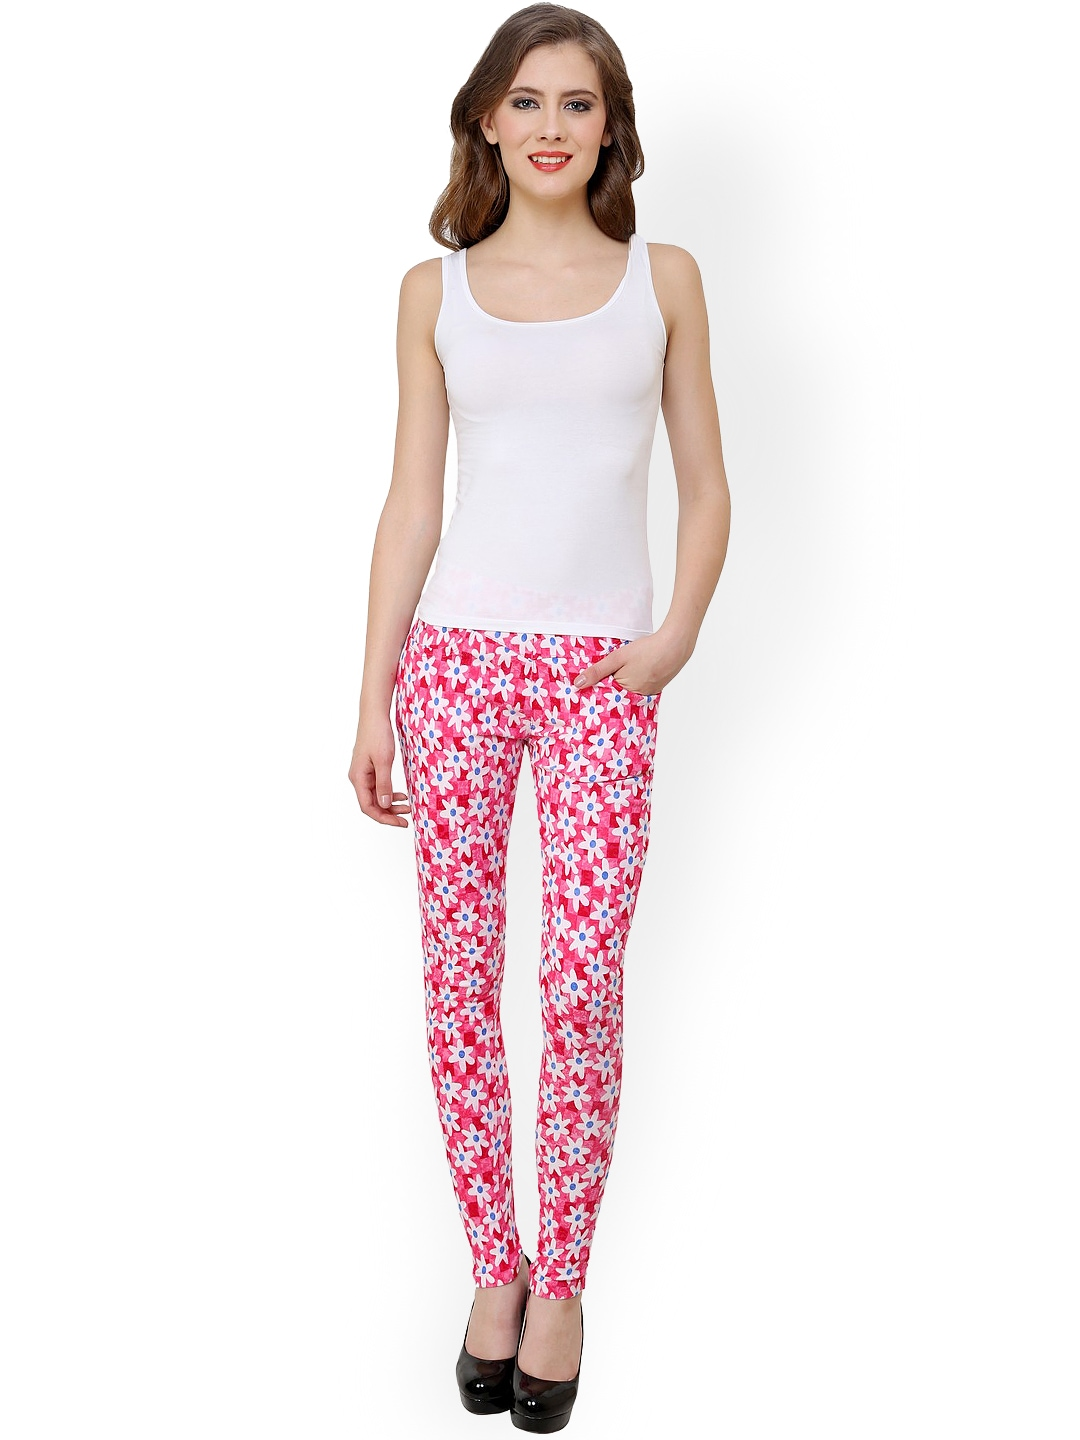 Girls' Jegging. Showing 48 of 49 results that match your query. Search Product Result. Product - Kids Knit Denim Jegging. Product Image. Price. In-store purchase only. Product Title. Product - Carter's Little Girls' Stretch Twill Jeggings, White. Product Image. Price $ Product Title.